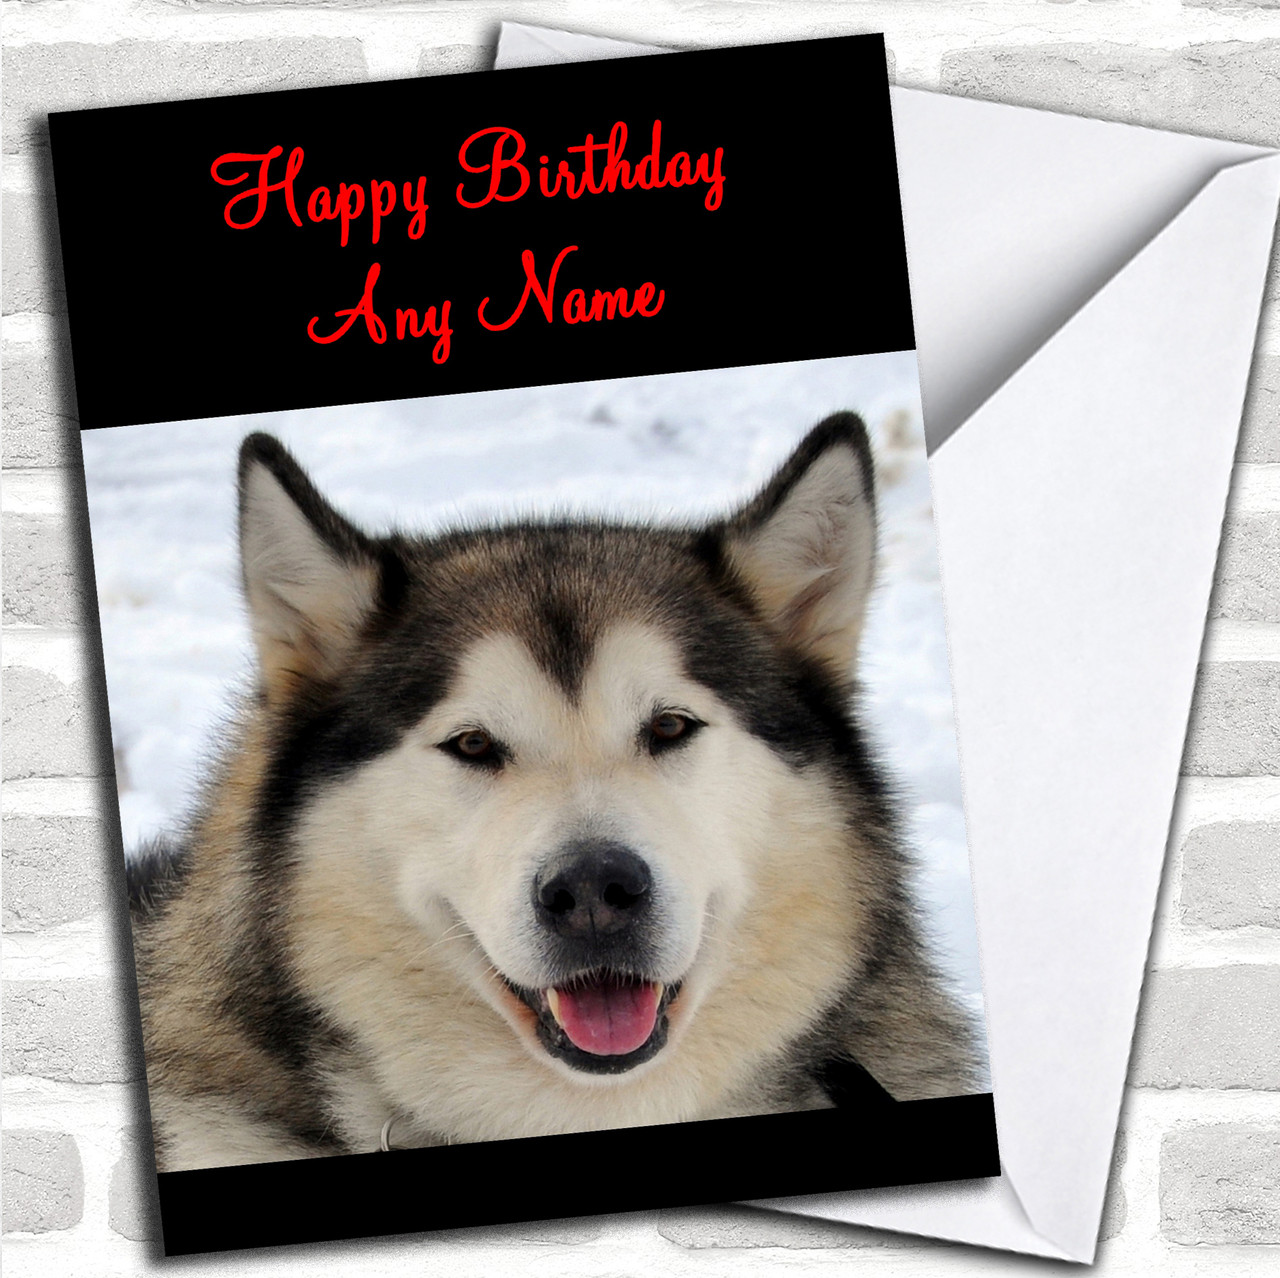 Alaskan Malamute Dog In The Snow Personalized Birthday Card